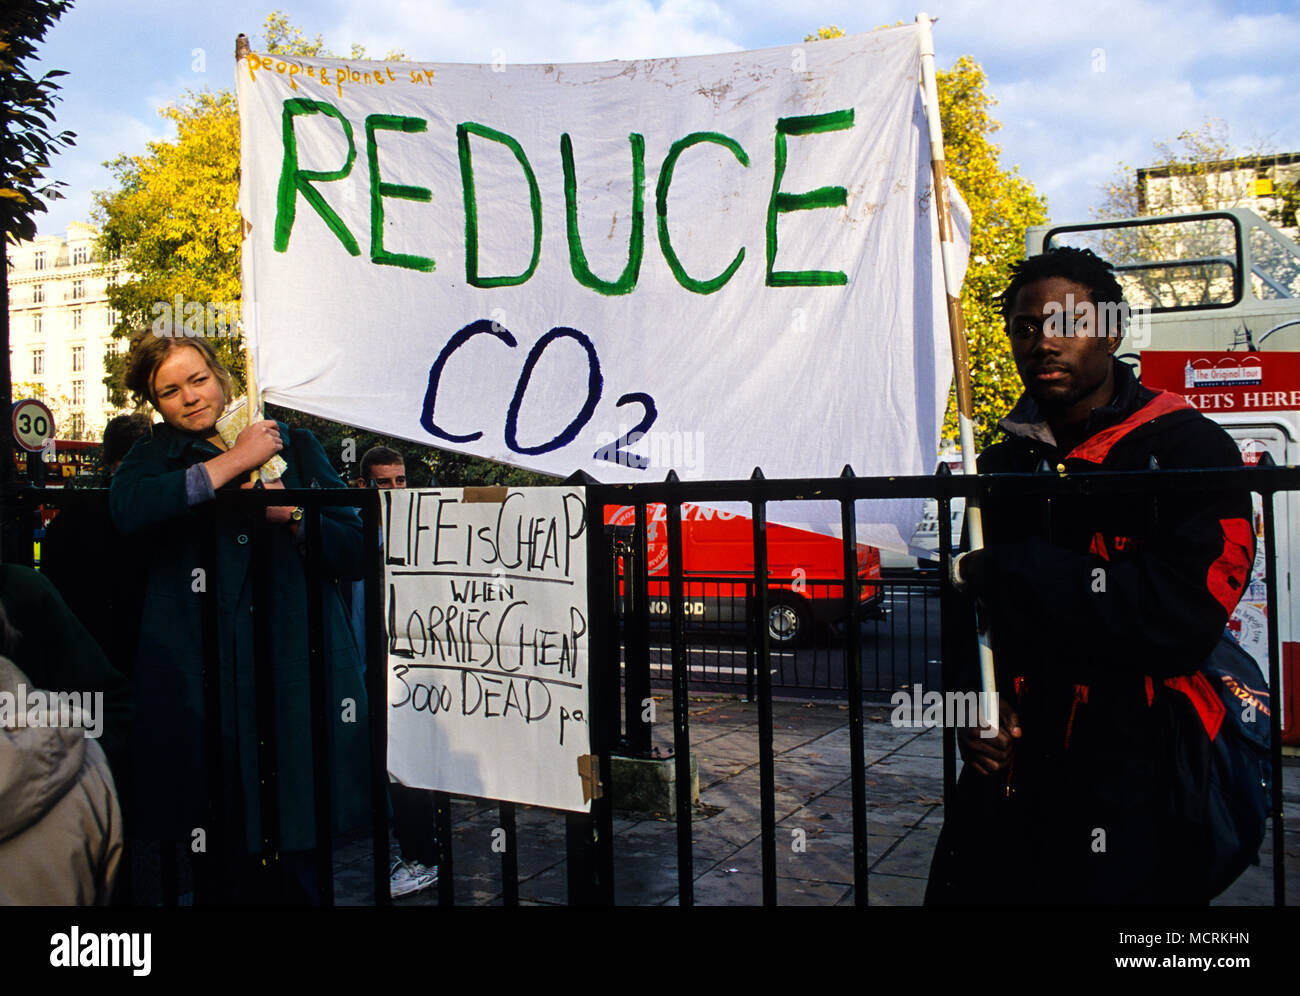 Air Pollution Demo, People and Planet, Westminster, London, England, UK, GB. - Stock Image